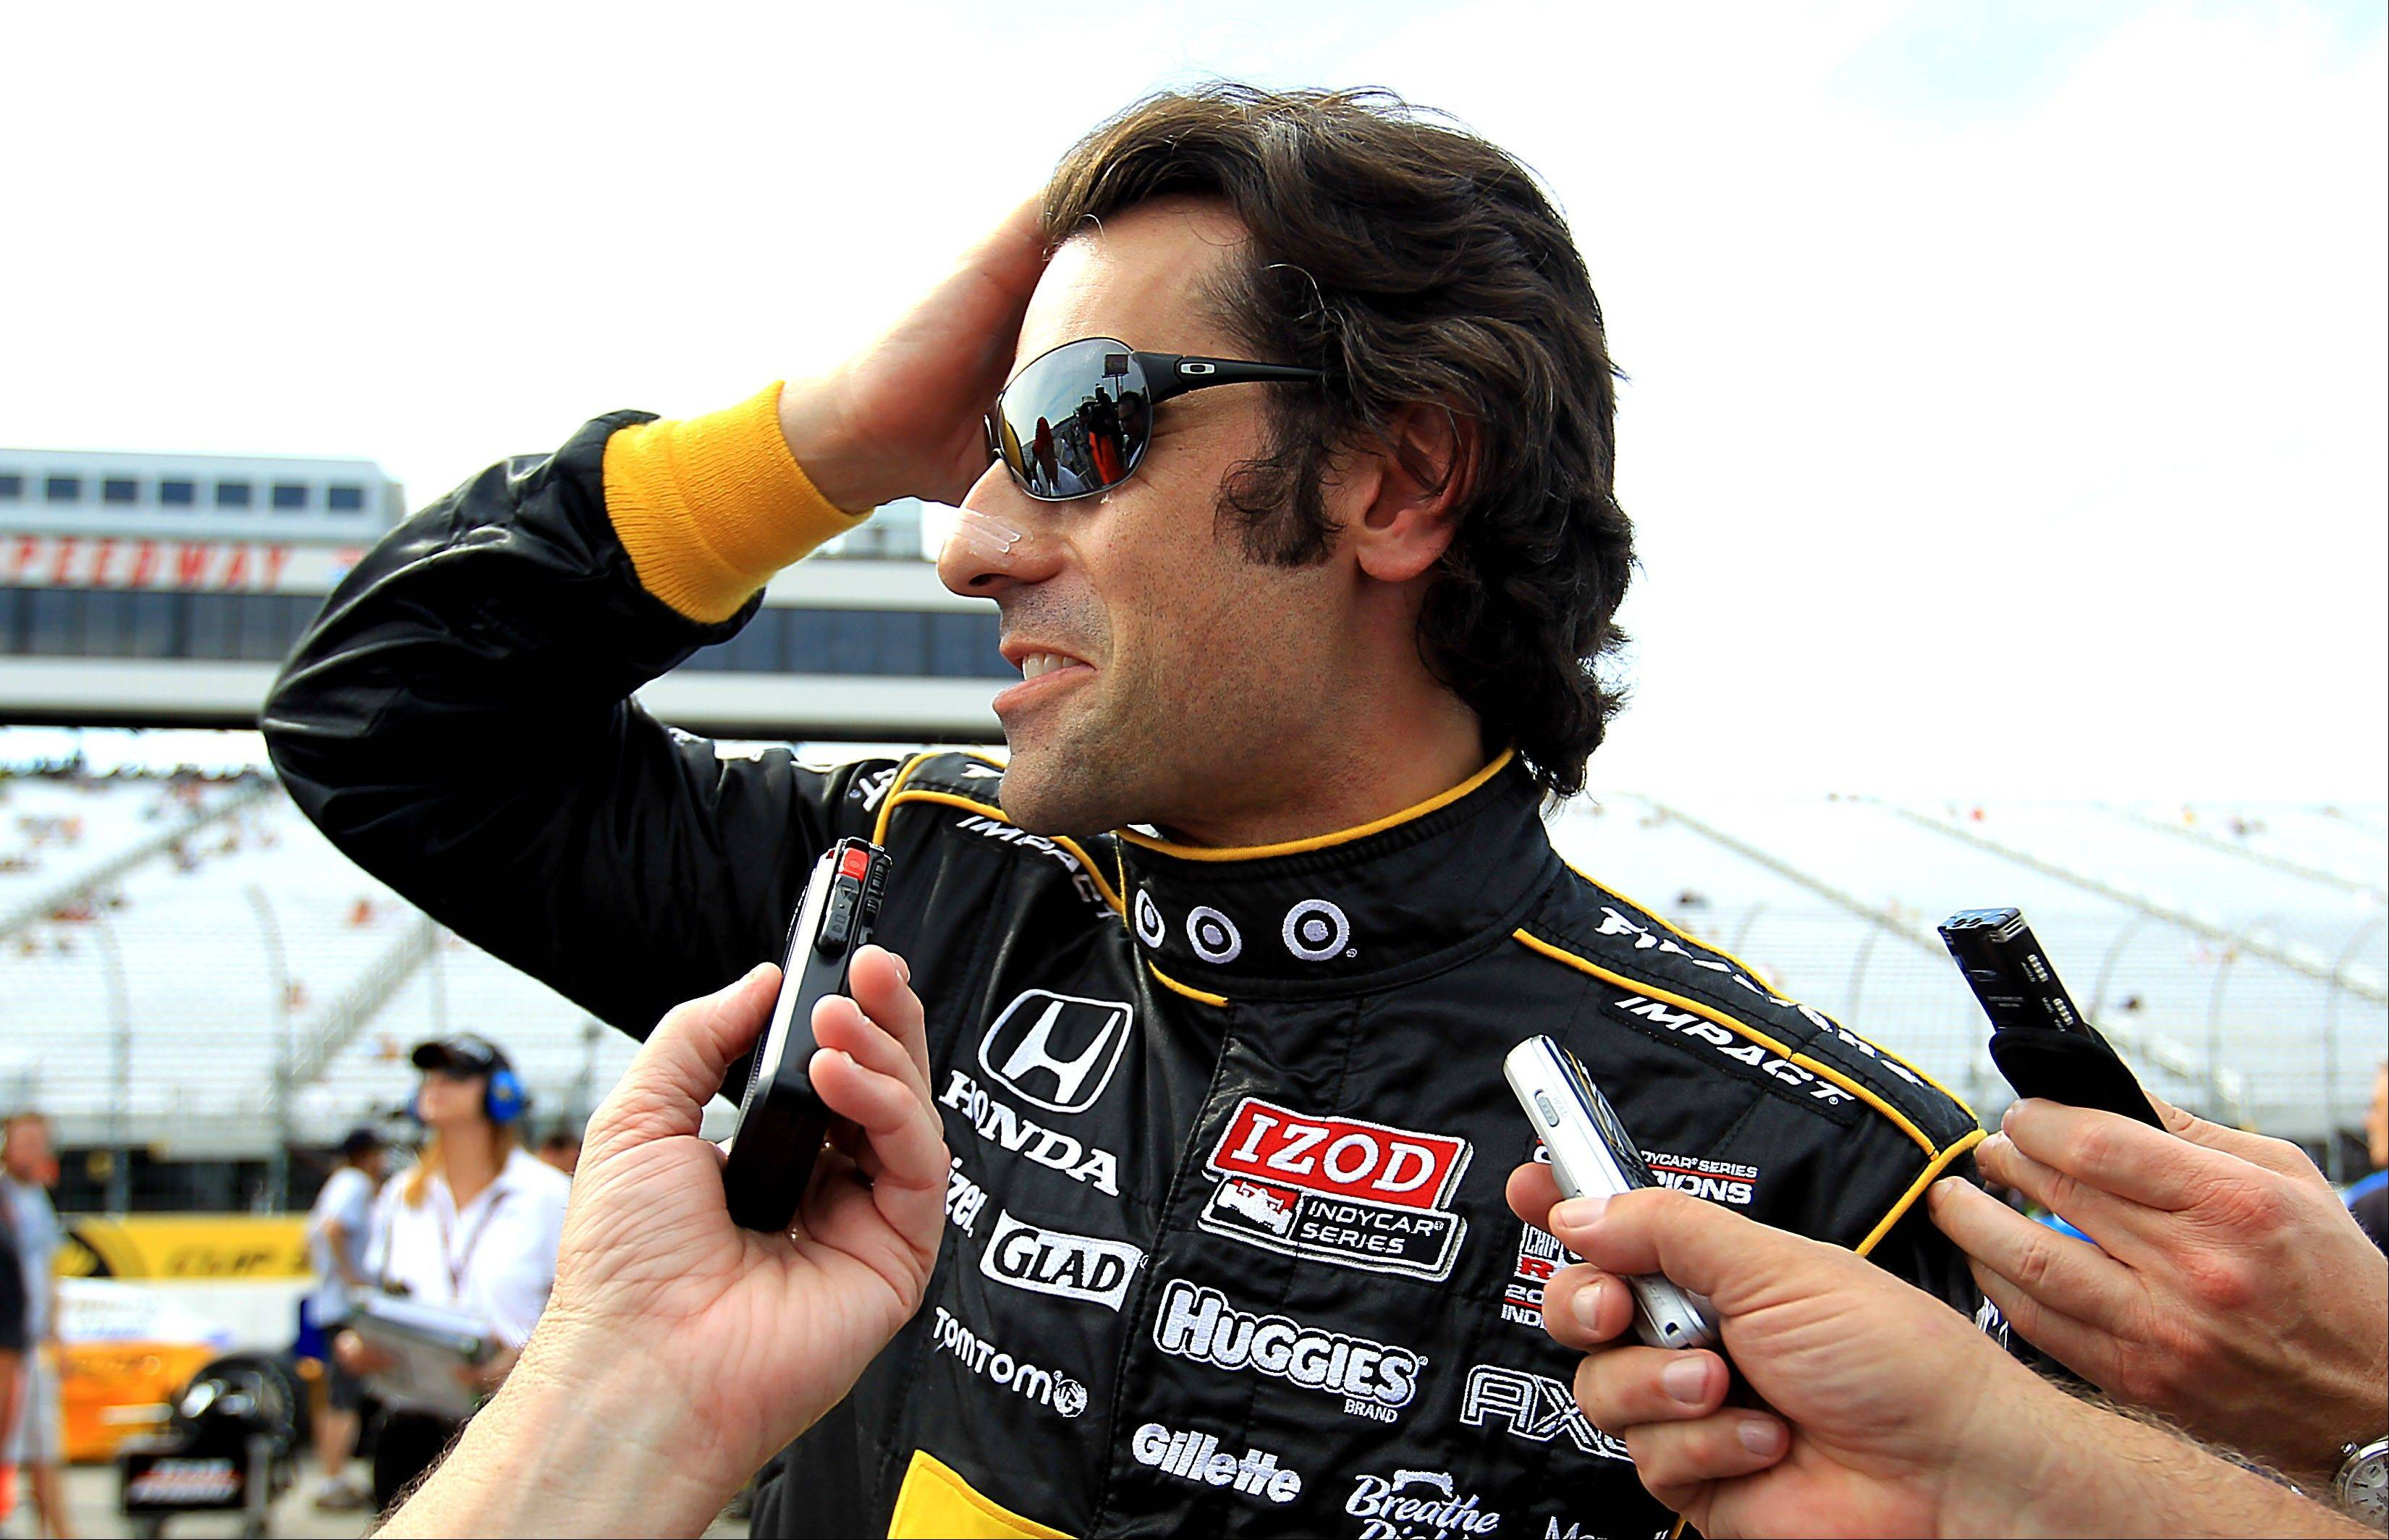 IndyCar driver Dario Franchitti talking with reporters after winning the pole for the MoveThatBlock.com auto race, at the New Hampshire Motor Speedway in Loudon, N.H. True to his nature, Franchitti shrugged at the mention of his success.